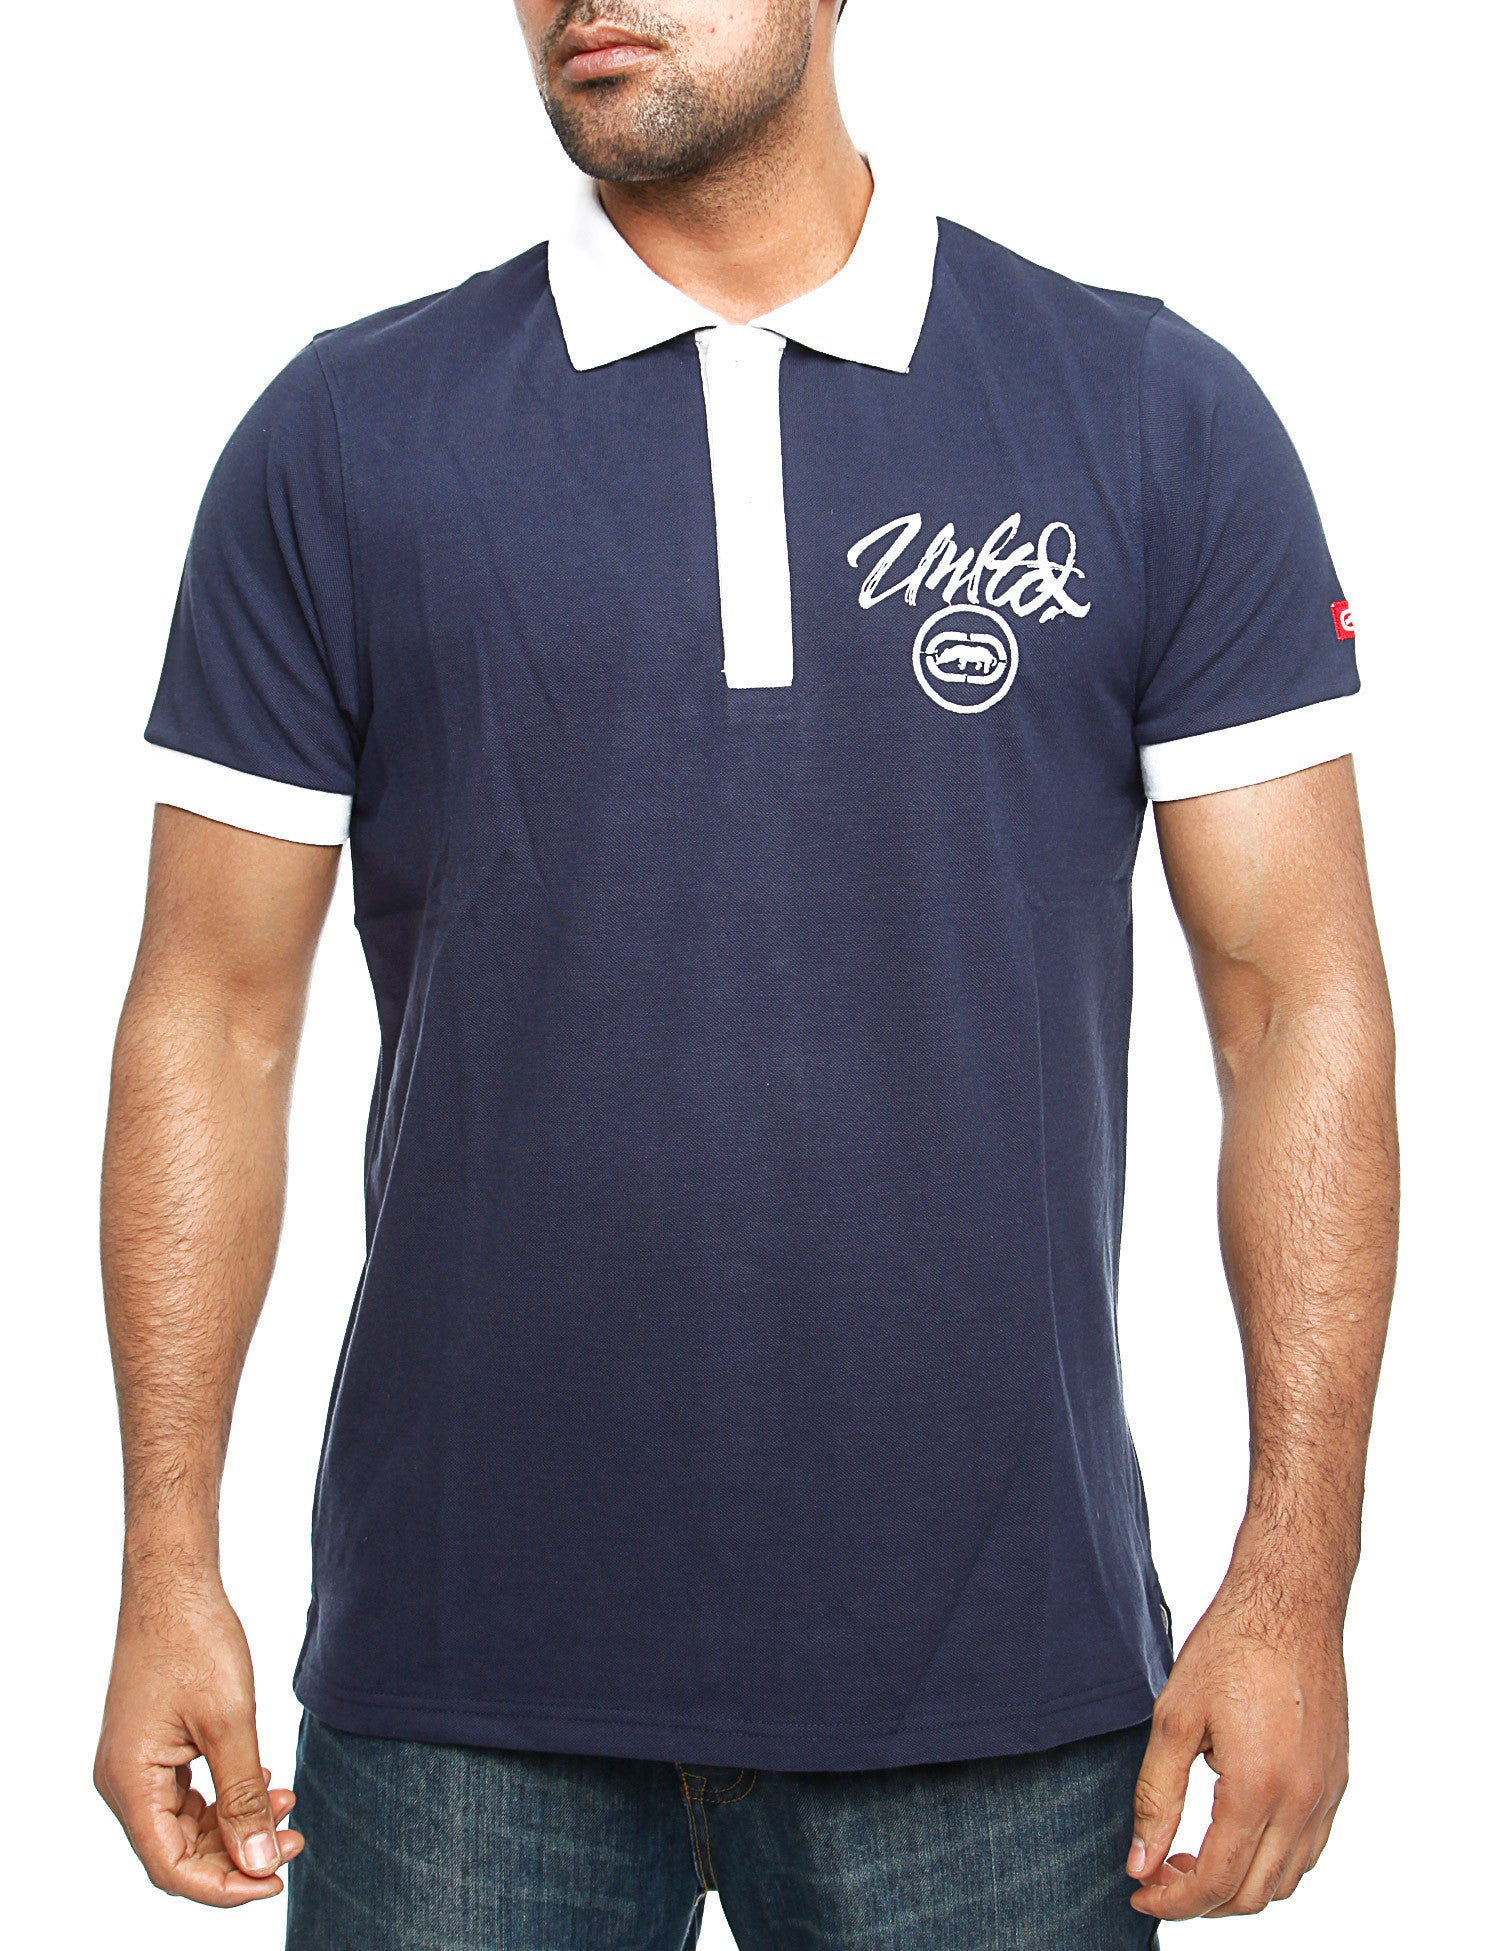 Image of Ecko Midliner Polo Shirt Navy